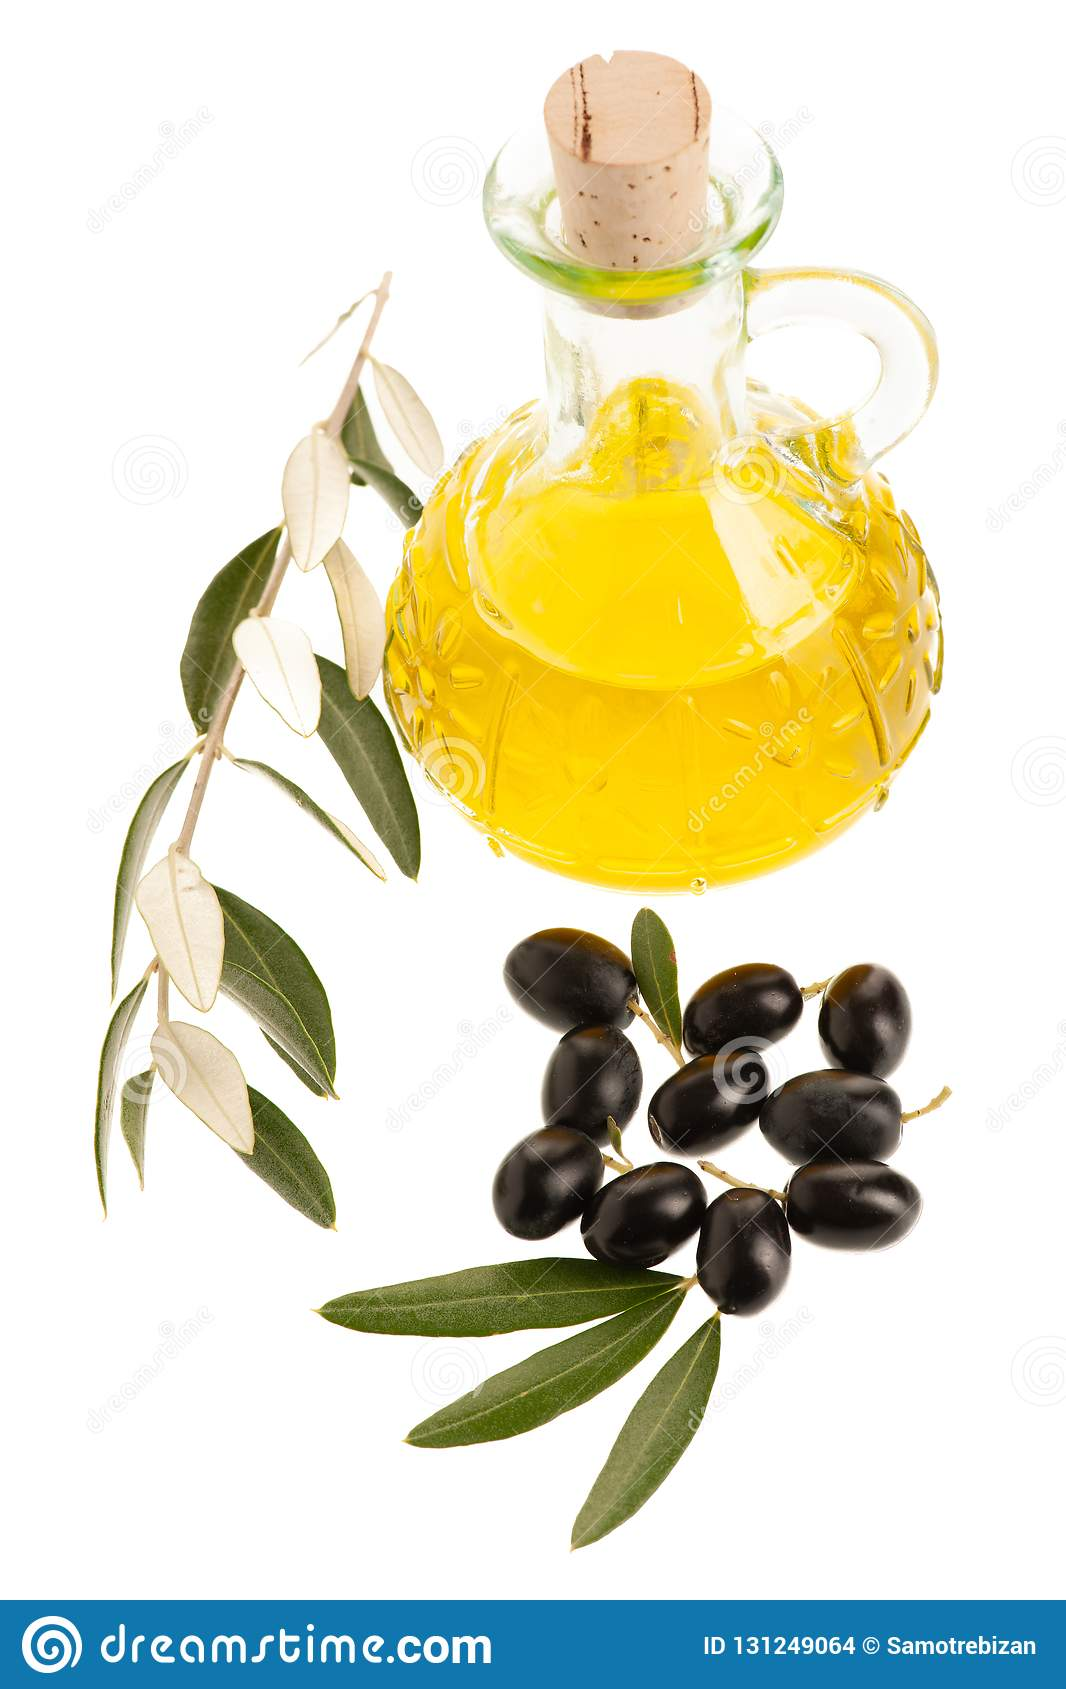 Bottle Of Olive Oil Isolated Over White Background Stock